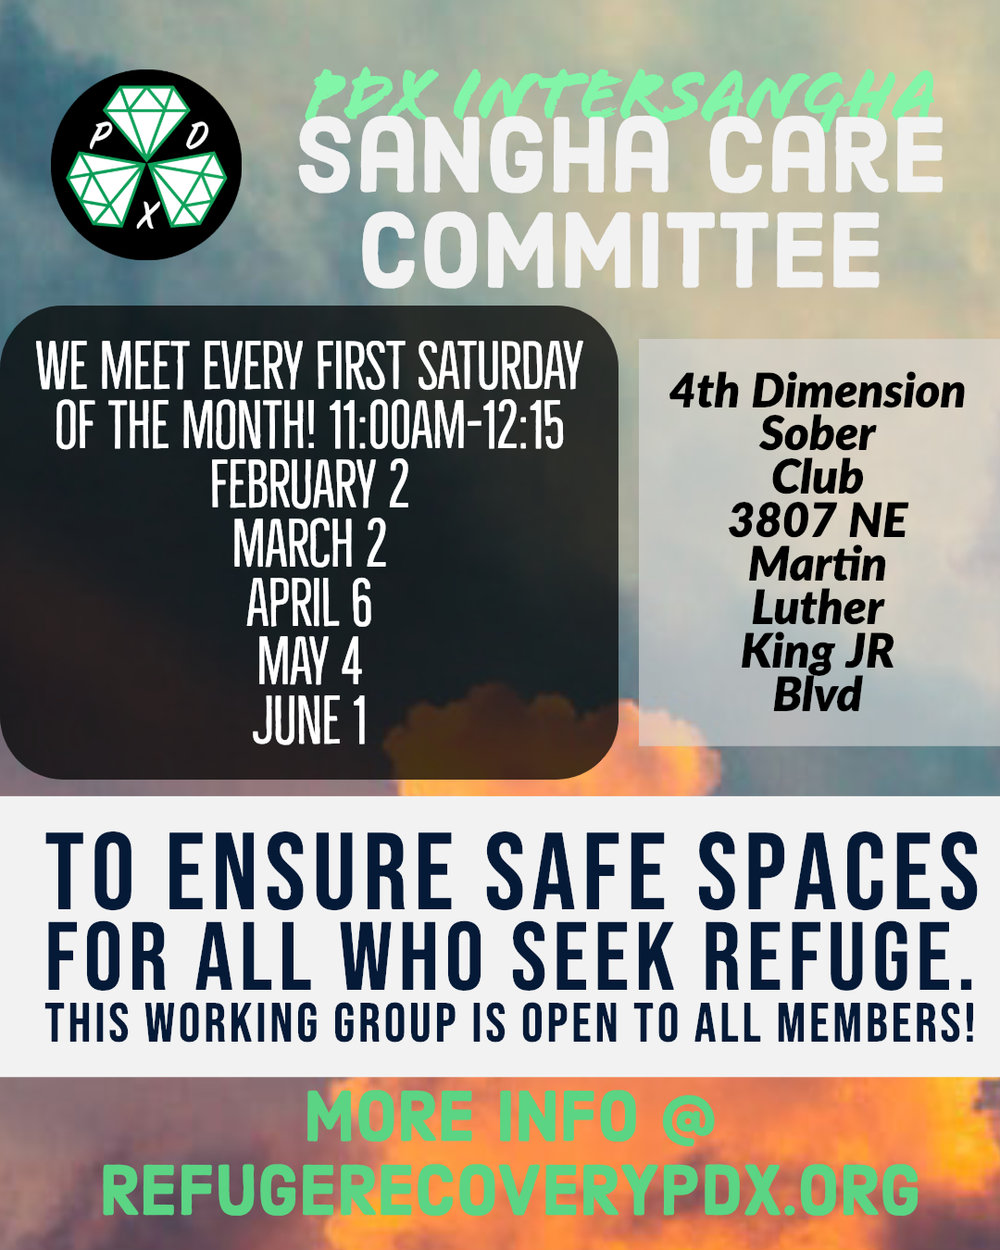 Sangha Care Committee.jpg